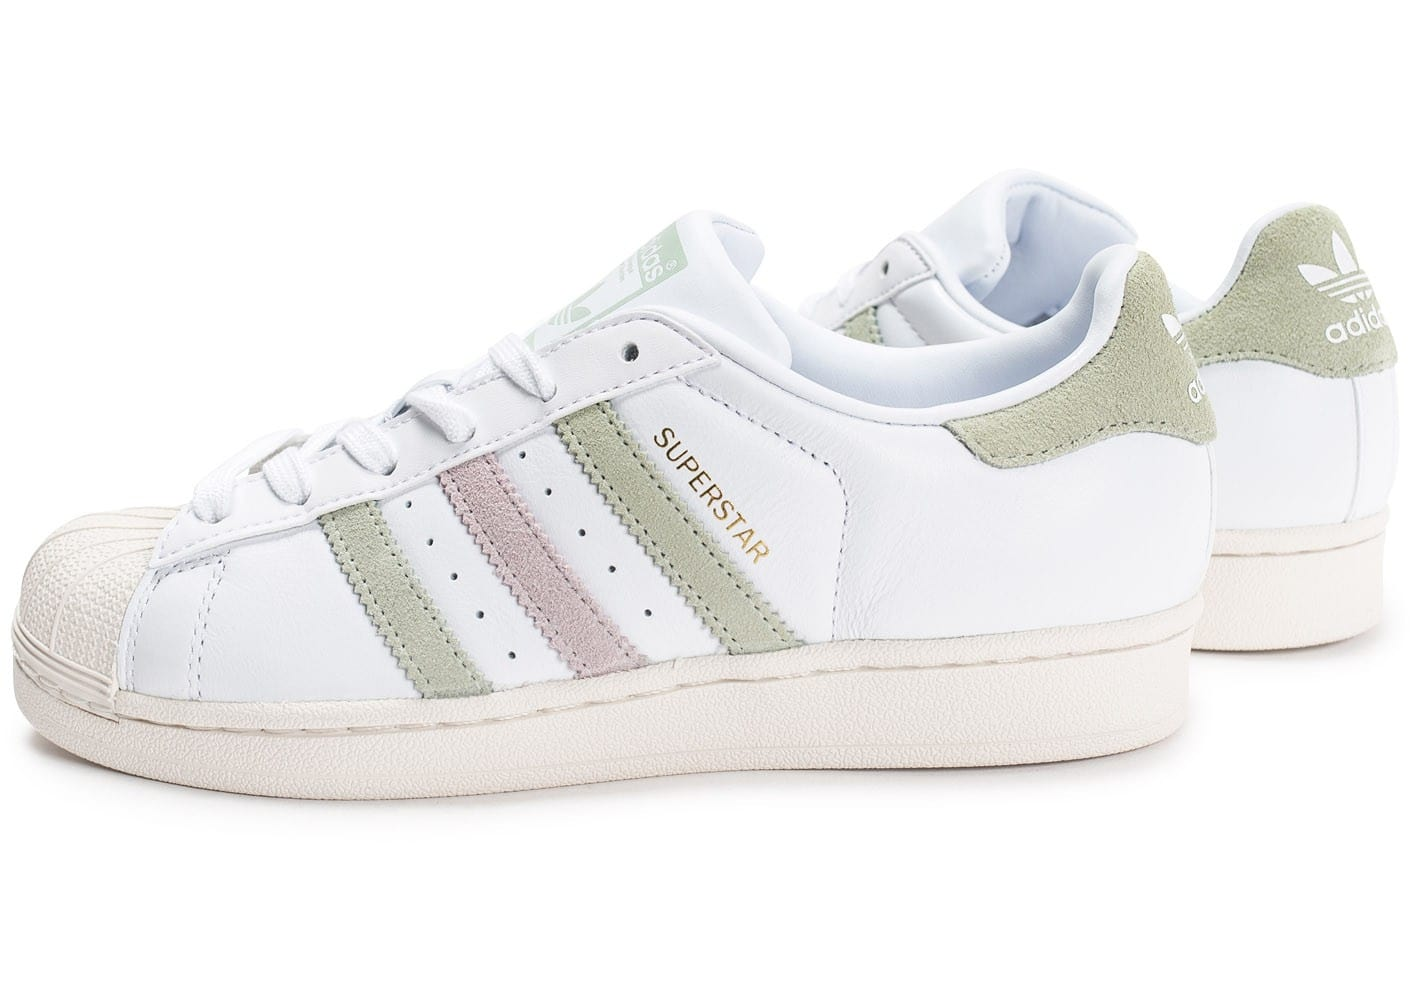 uk availability 5be52 f37d4 10268-chaussures-adidas-superstar-cuir-core-blanche-vue-par-paire.jpg